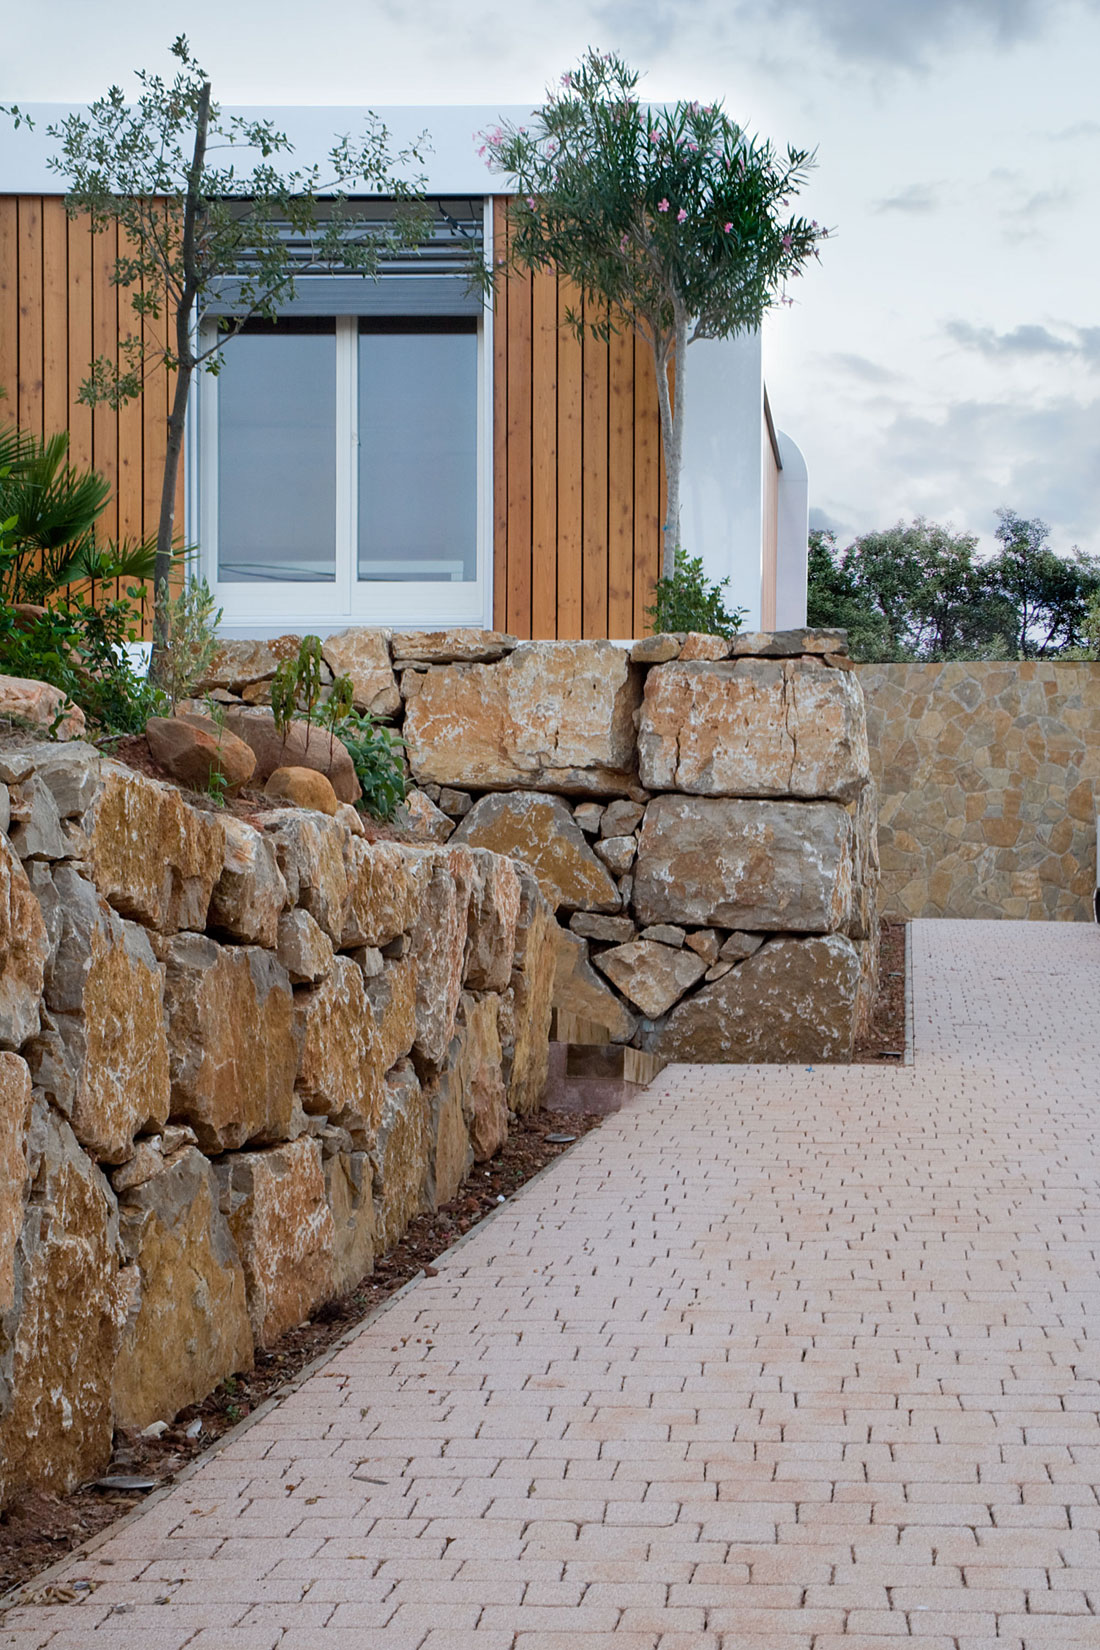 Eco-Friendly and Energy Efficiency with Mobile Device Control of El Refugio Inteligente by NOEM-07